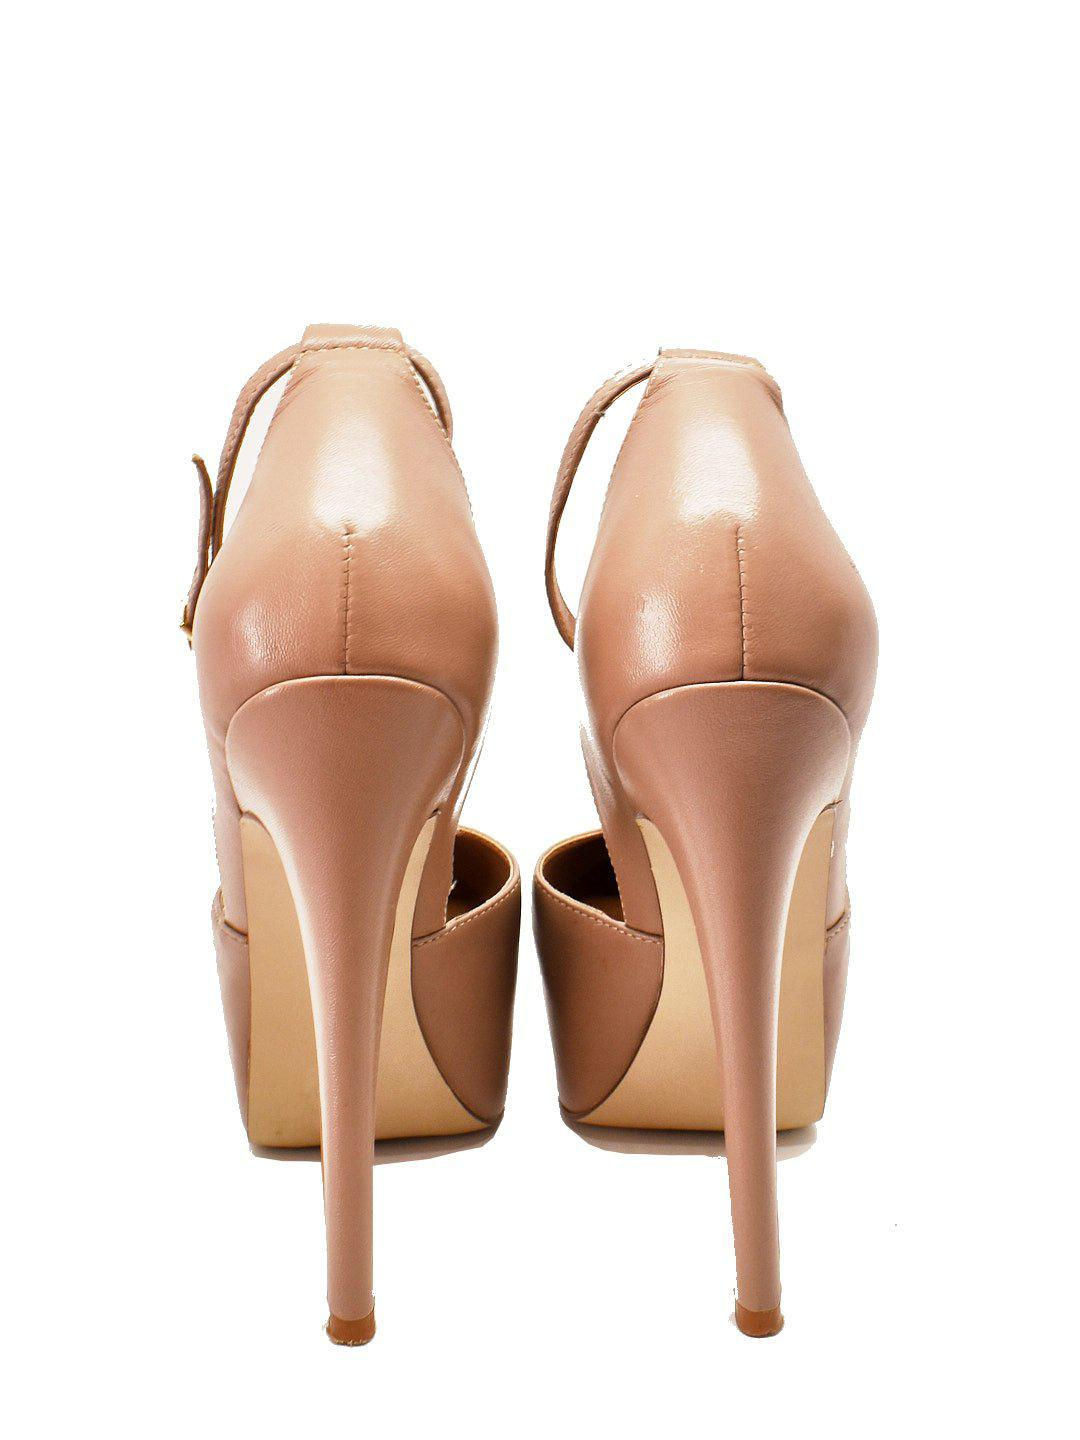 Nude Platform Pumps